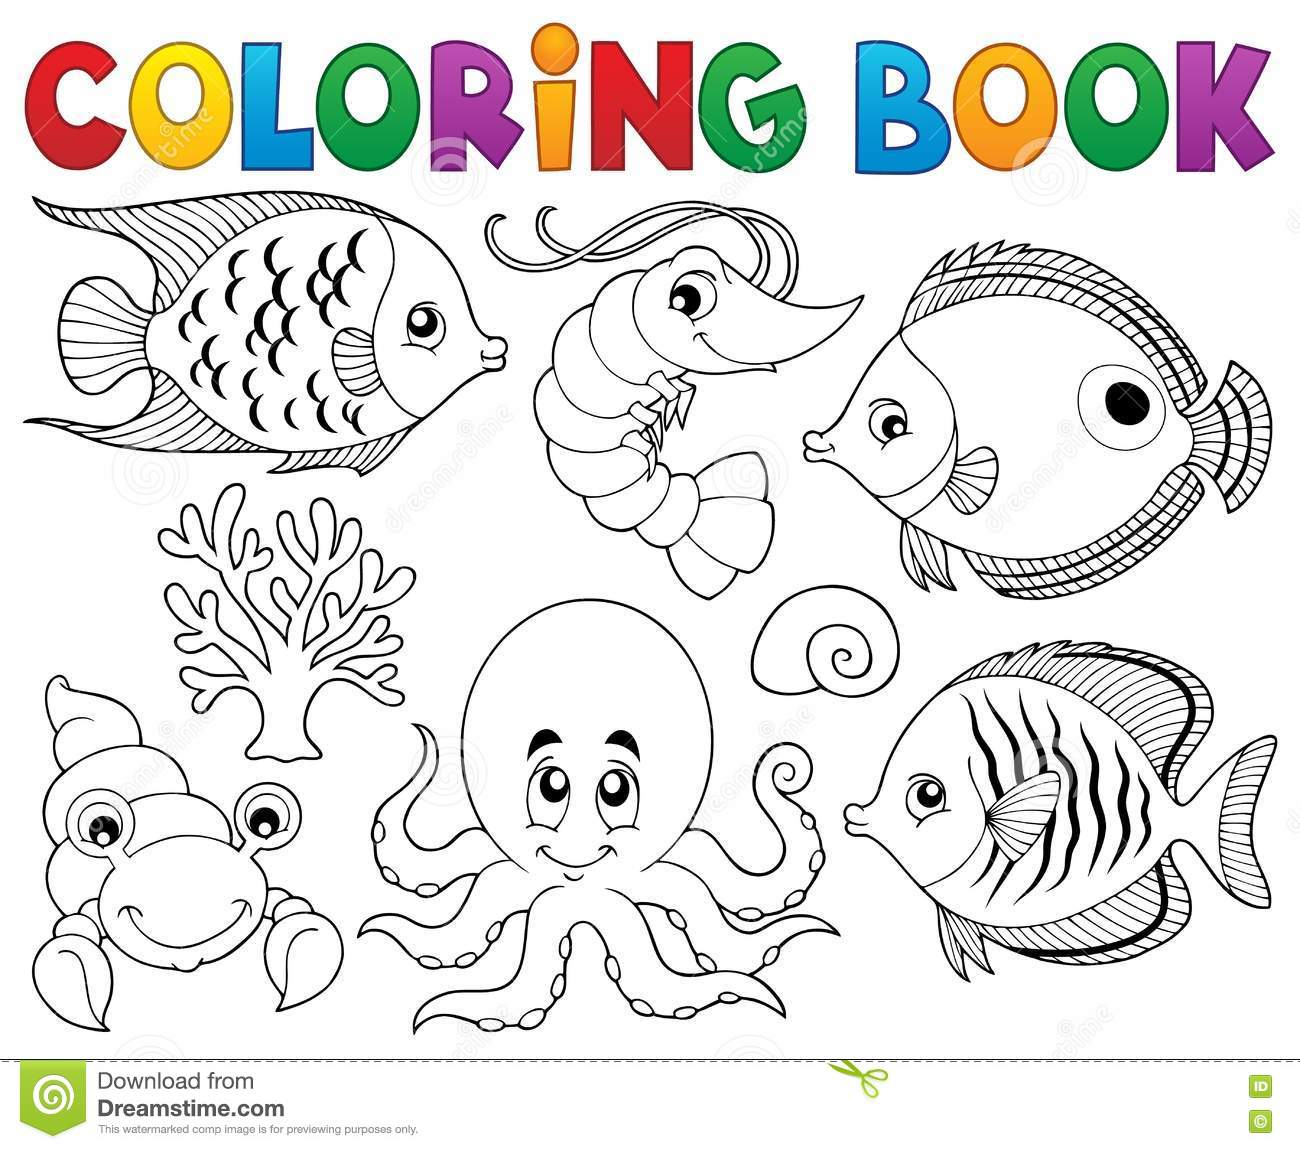 Shrimp Coloring Book Small Marine Cancroid Ocean